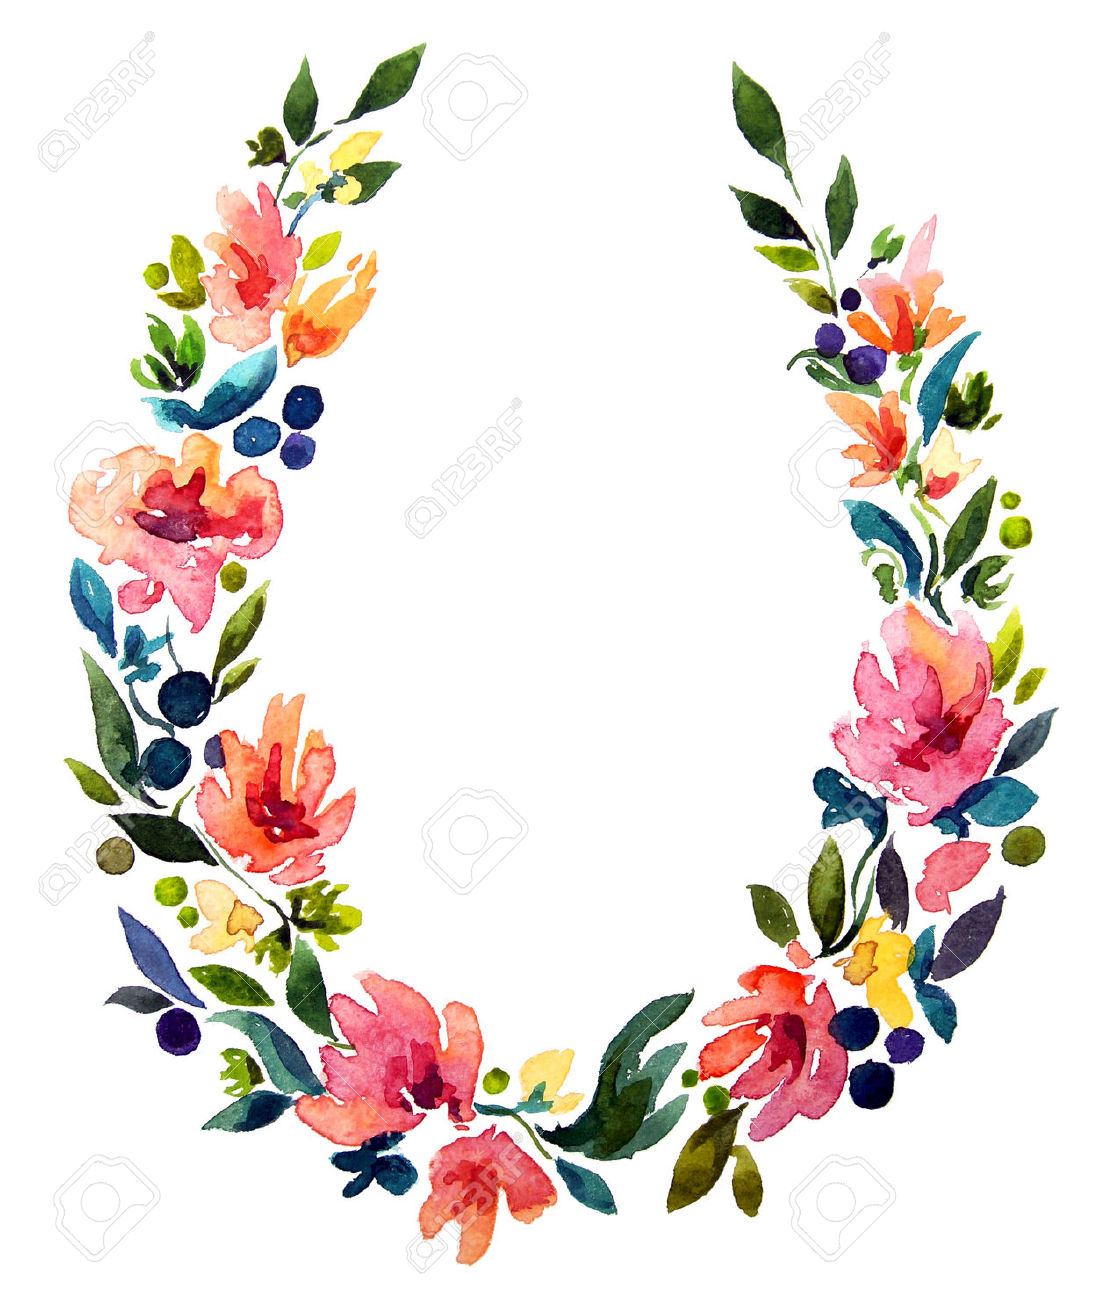 flower wreath drawing at getdrawings com free for personal use rh getdrawings com